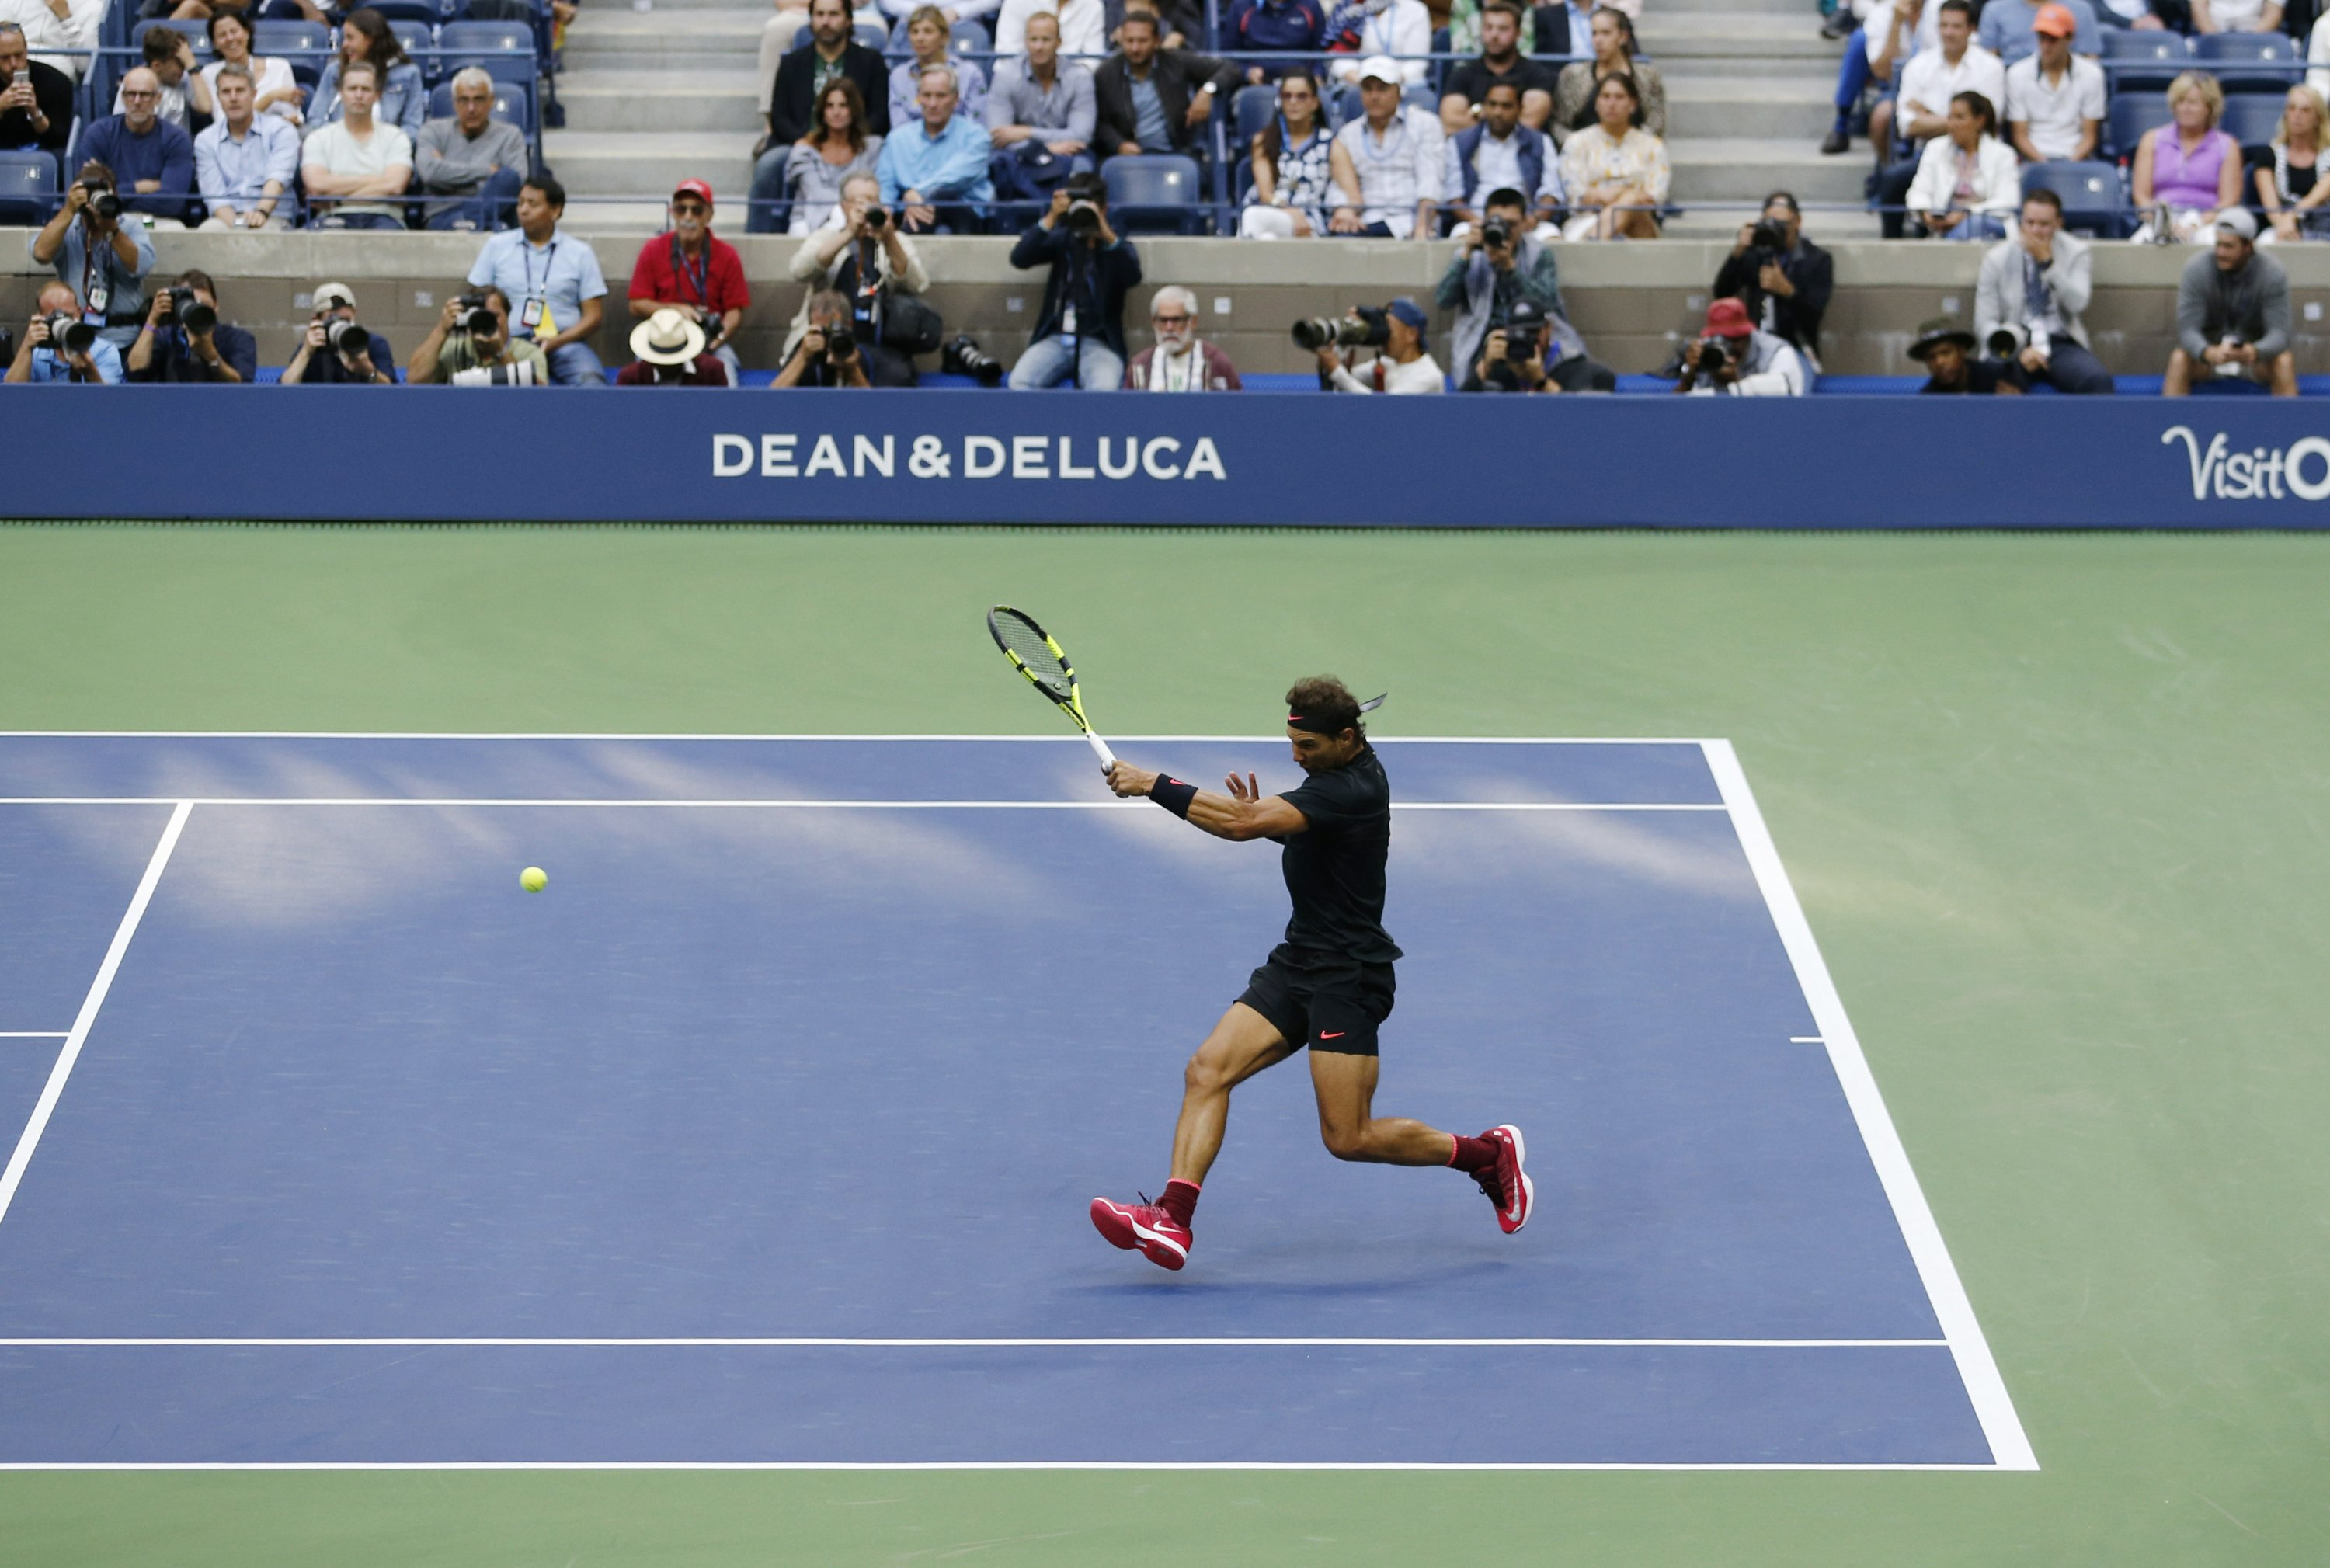 The Latest: Nadal wins US Open for 16th major title